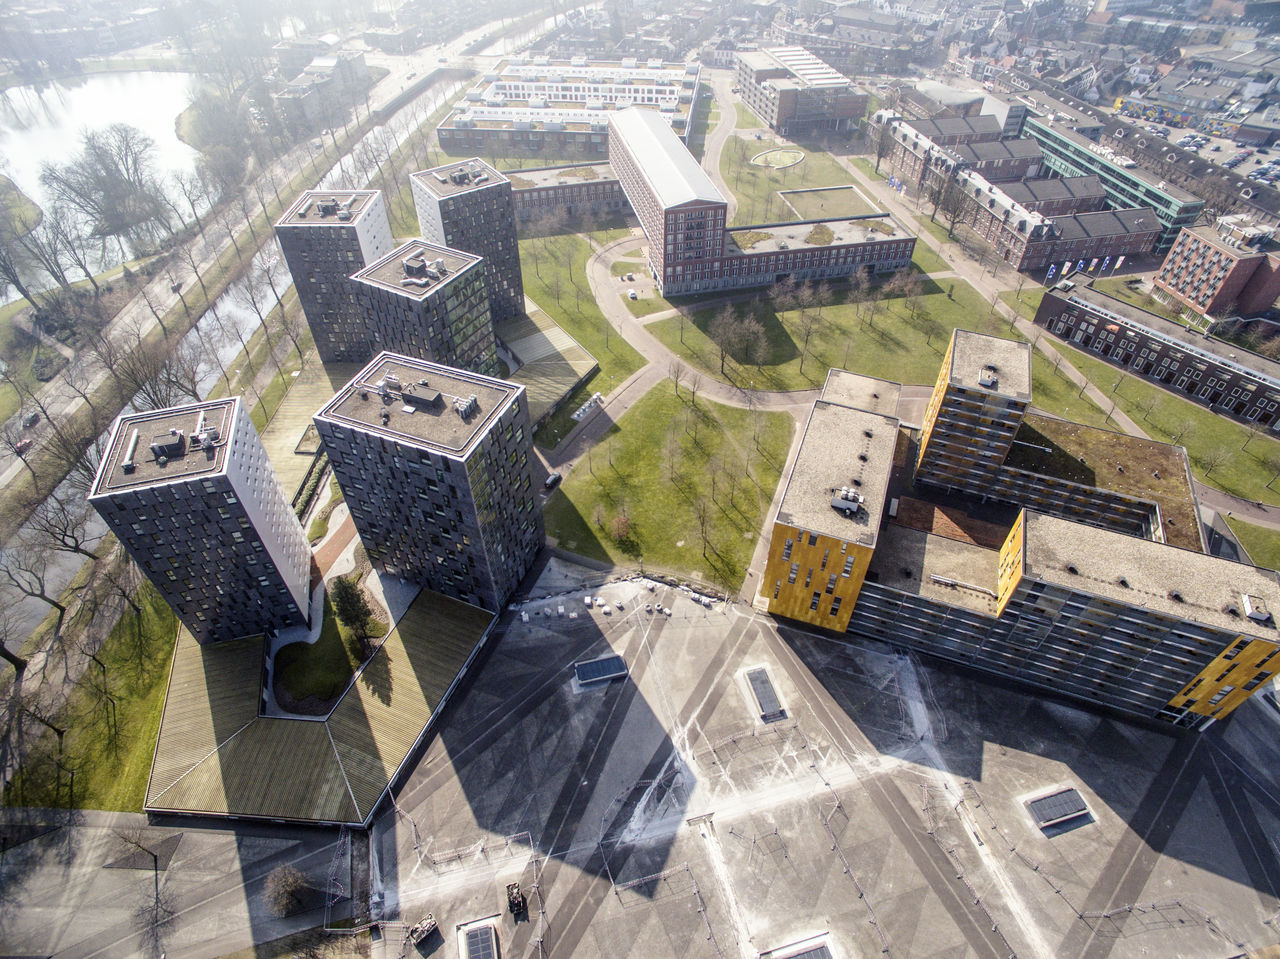 Aerial View Architecture Breda Building Exterior Built Structure Chassé Park Cityscape High Angle View Rem Koolhaas Residential Building